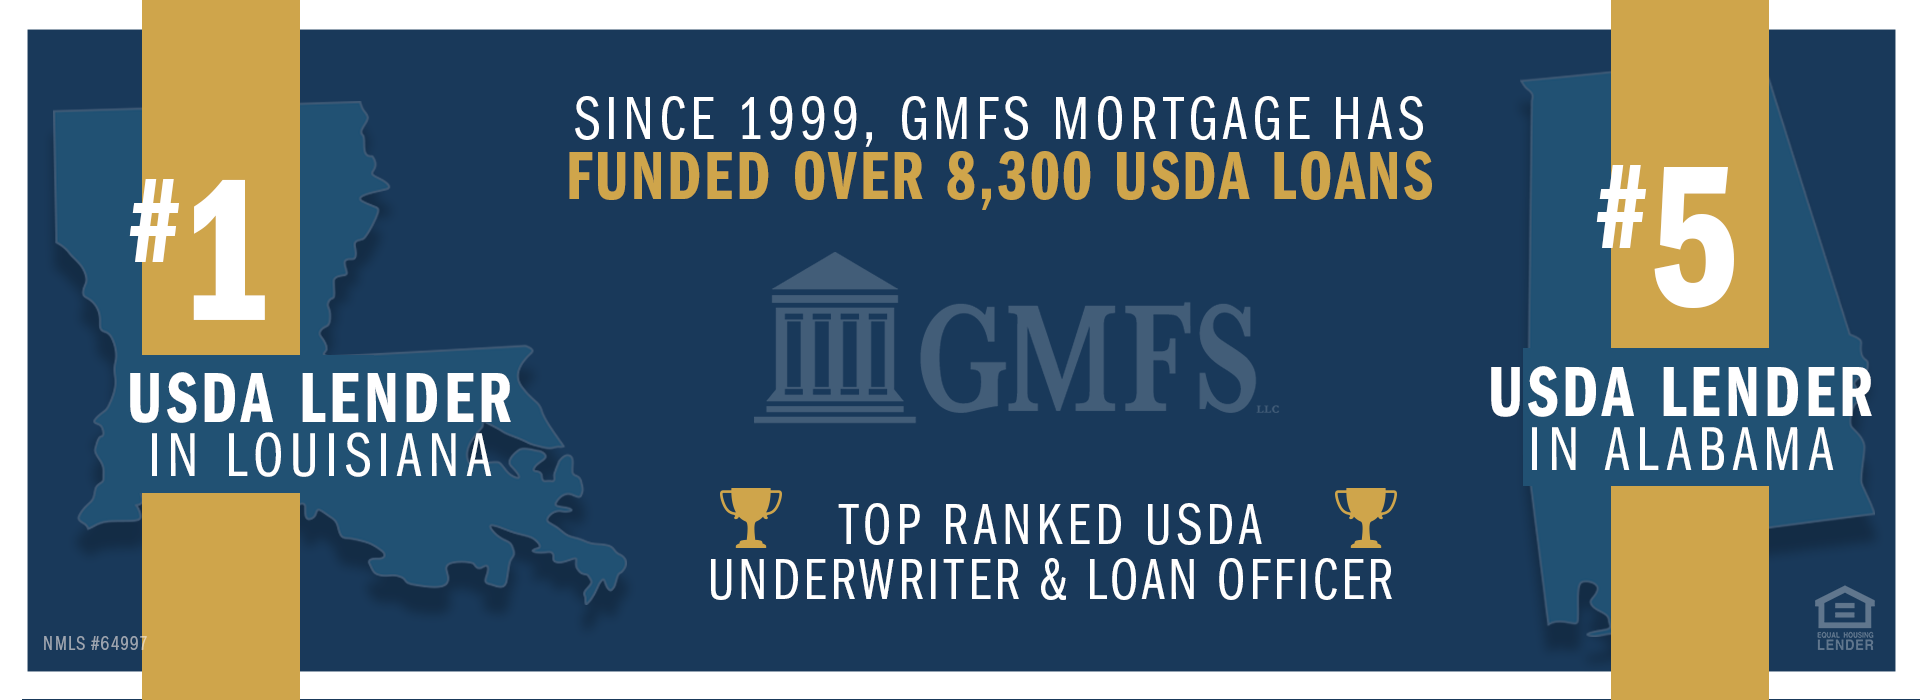 gmfs mortgage usda rd lender louisiana alabama